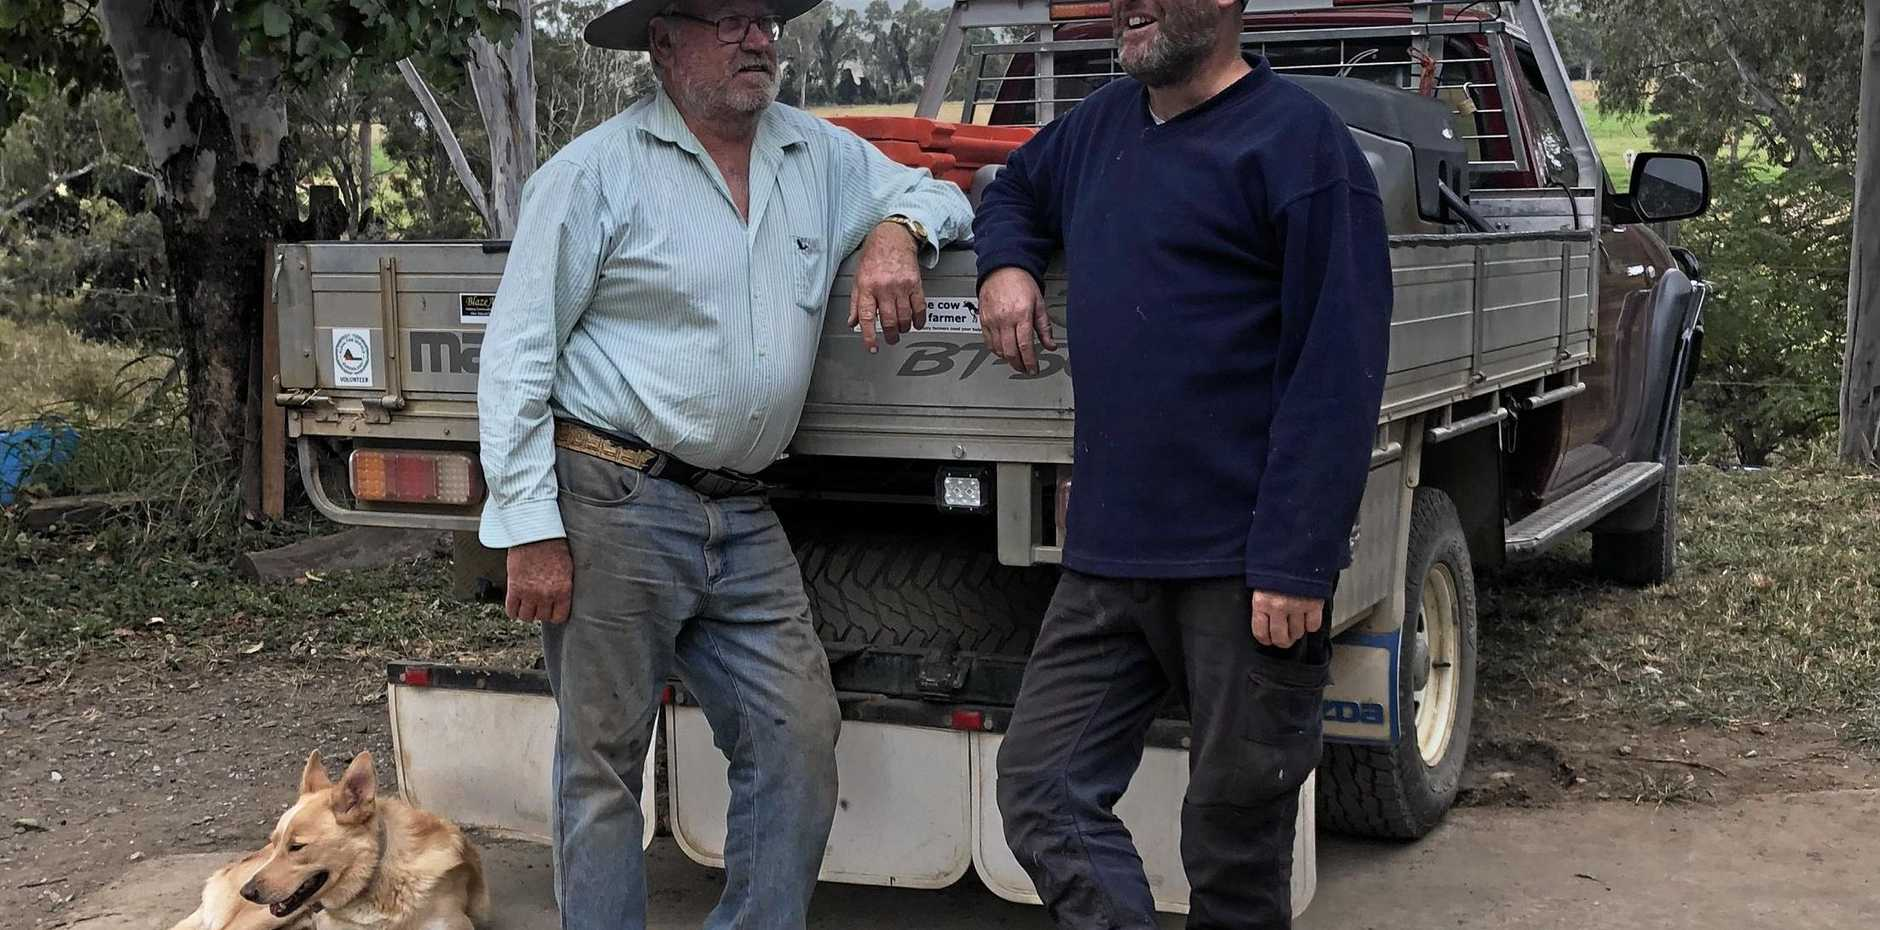 FARM HELPERS: Dennis Hiscock and Dave Paish spent two weeks helping farmers in Victoria after recent bush fires.